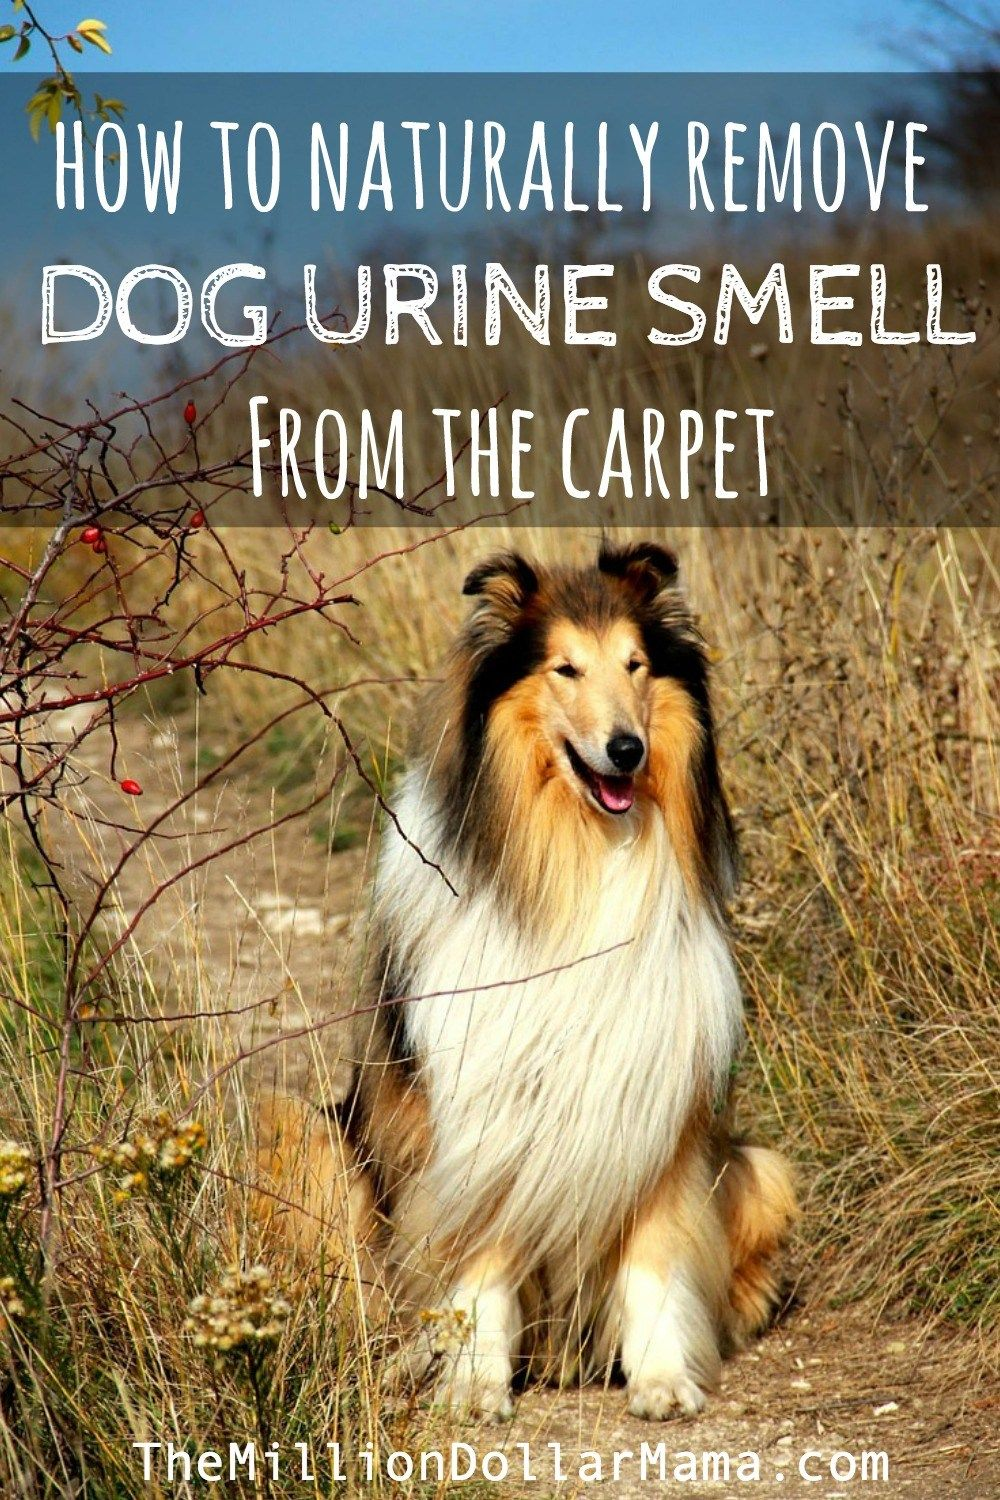 How To Naturally Remove Dog Urine Smell From The Carpet